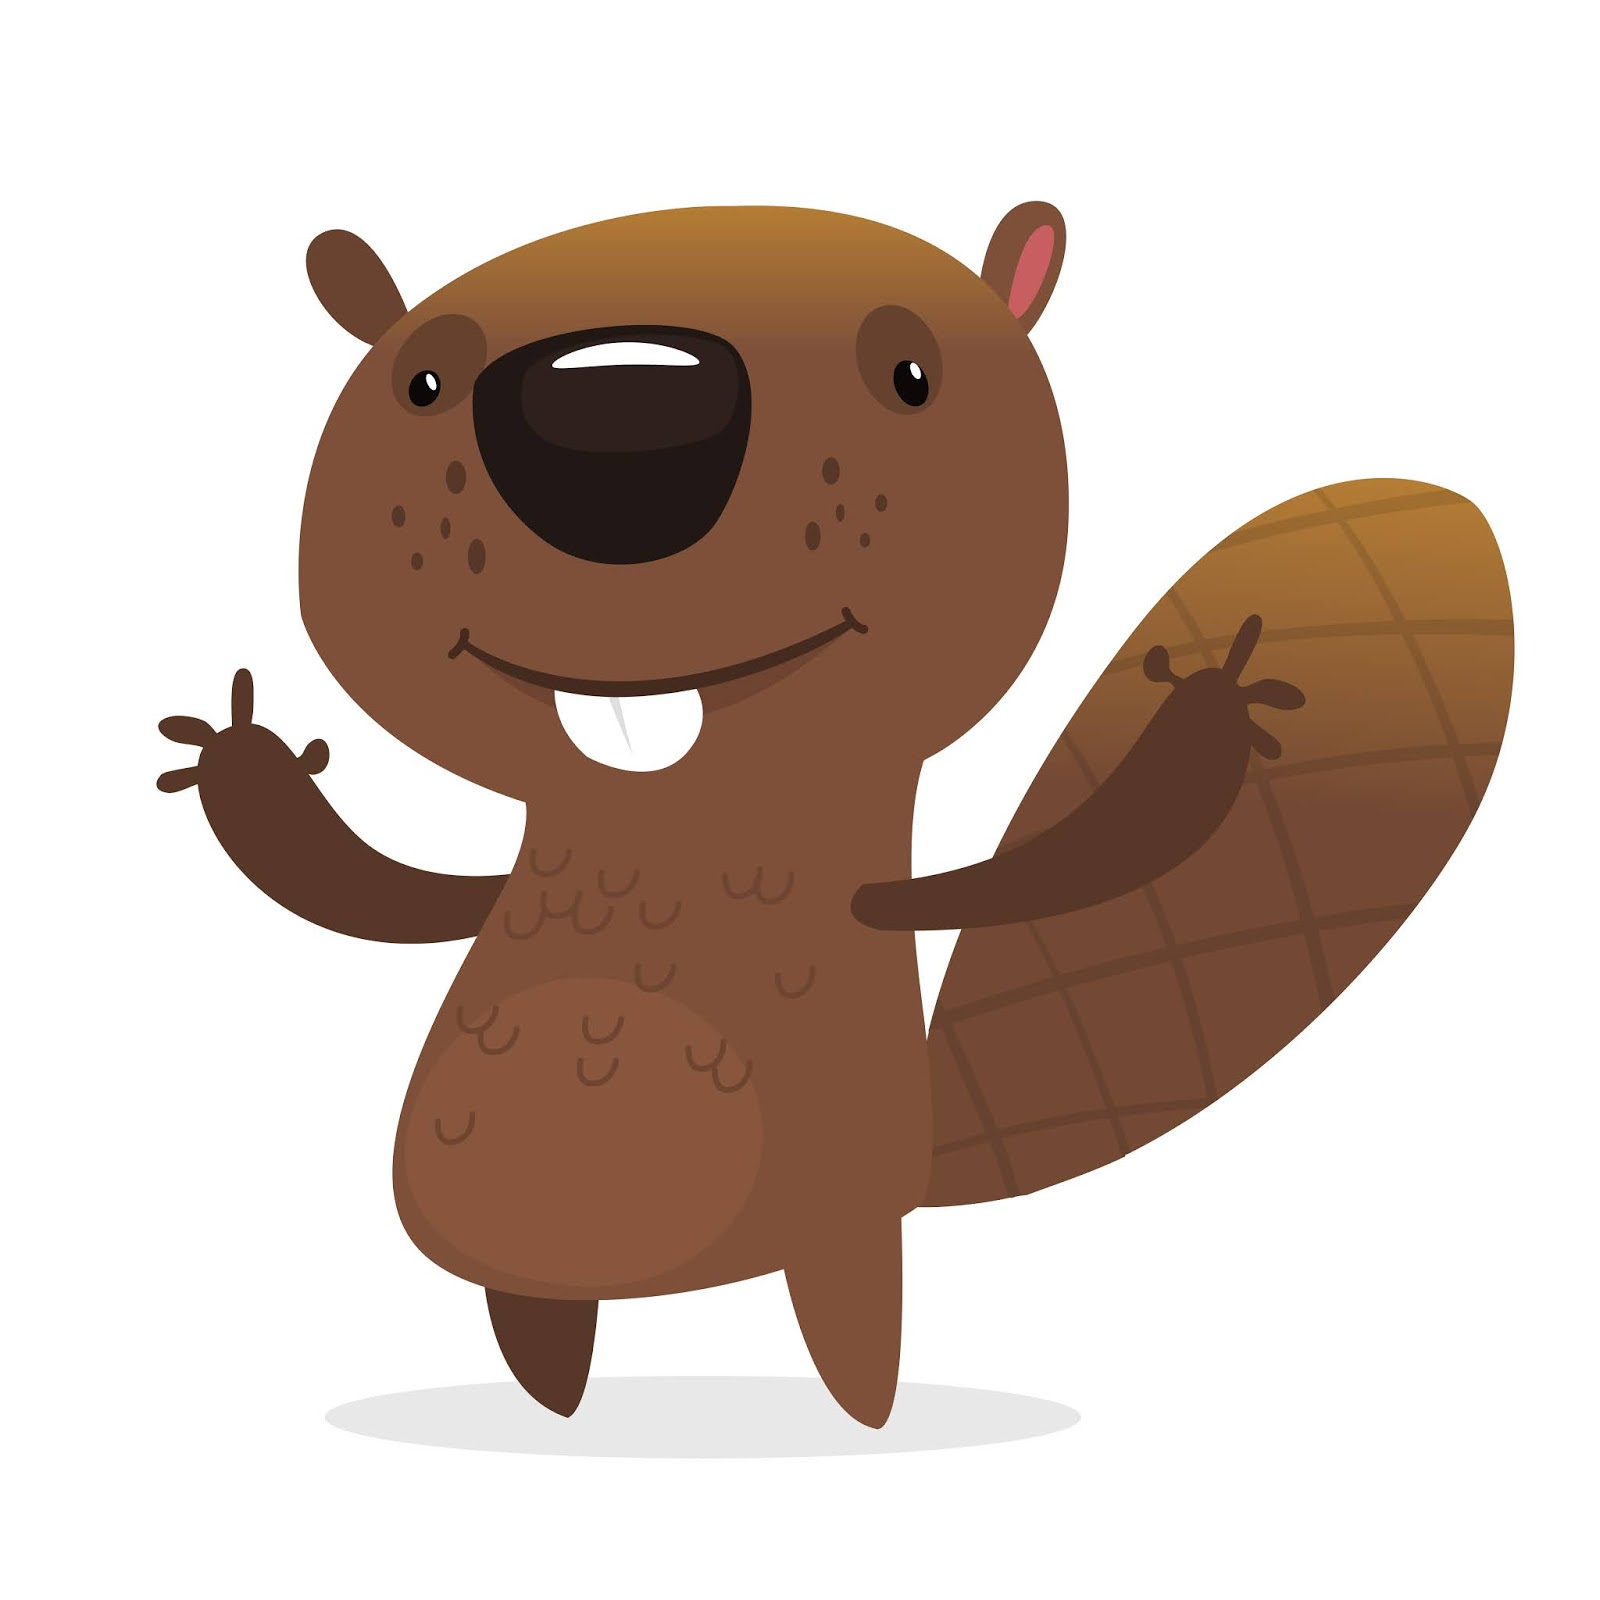 Cartoon Beaver Illustration Free Download Vector CDR, AI, EPS and PNG Formats